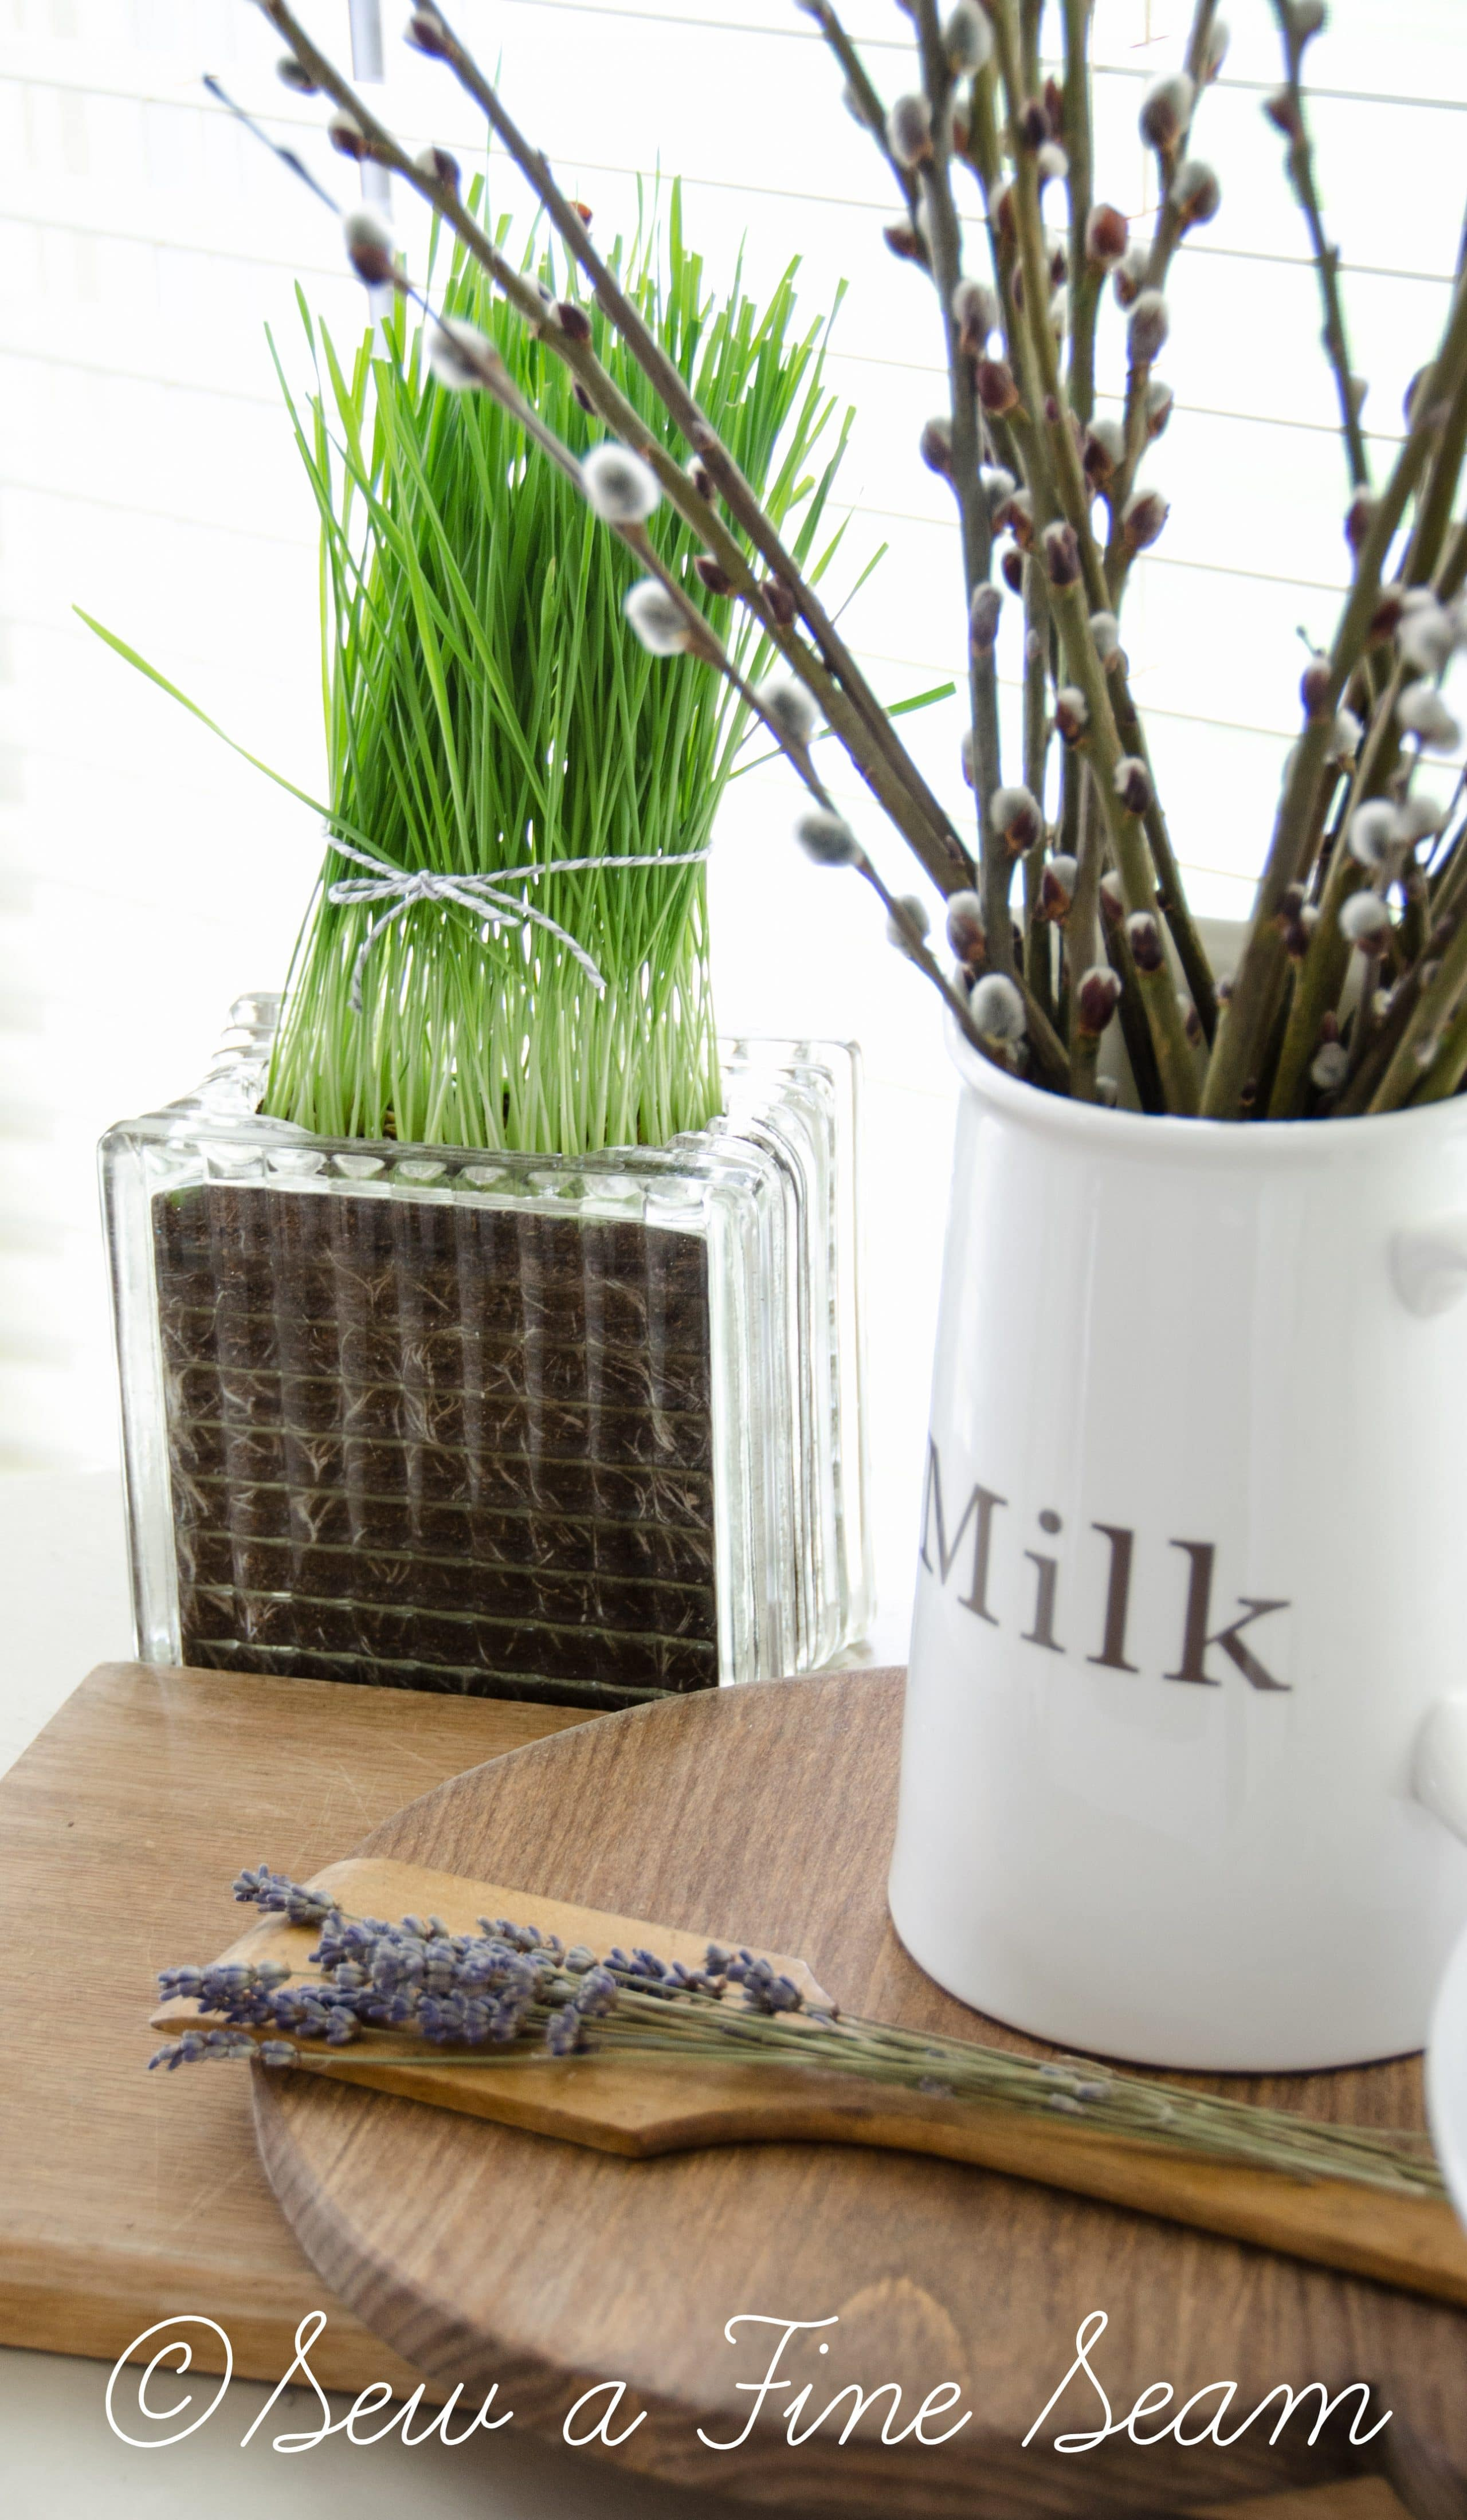 Decorative Items For Living Room: Planting Wheat Grass For Decor